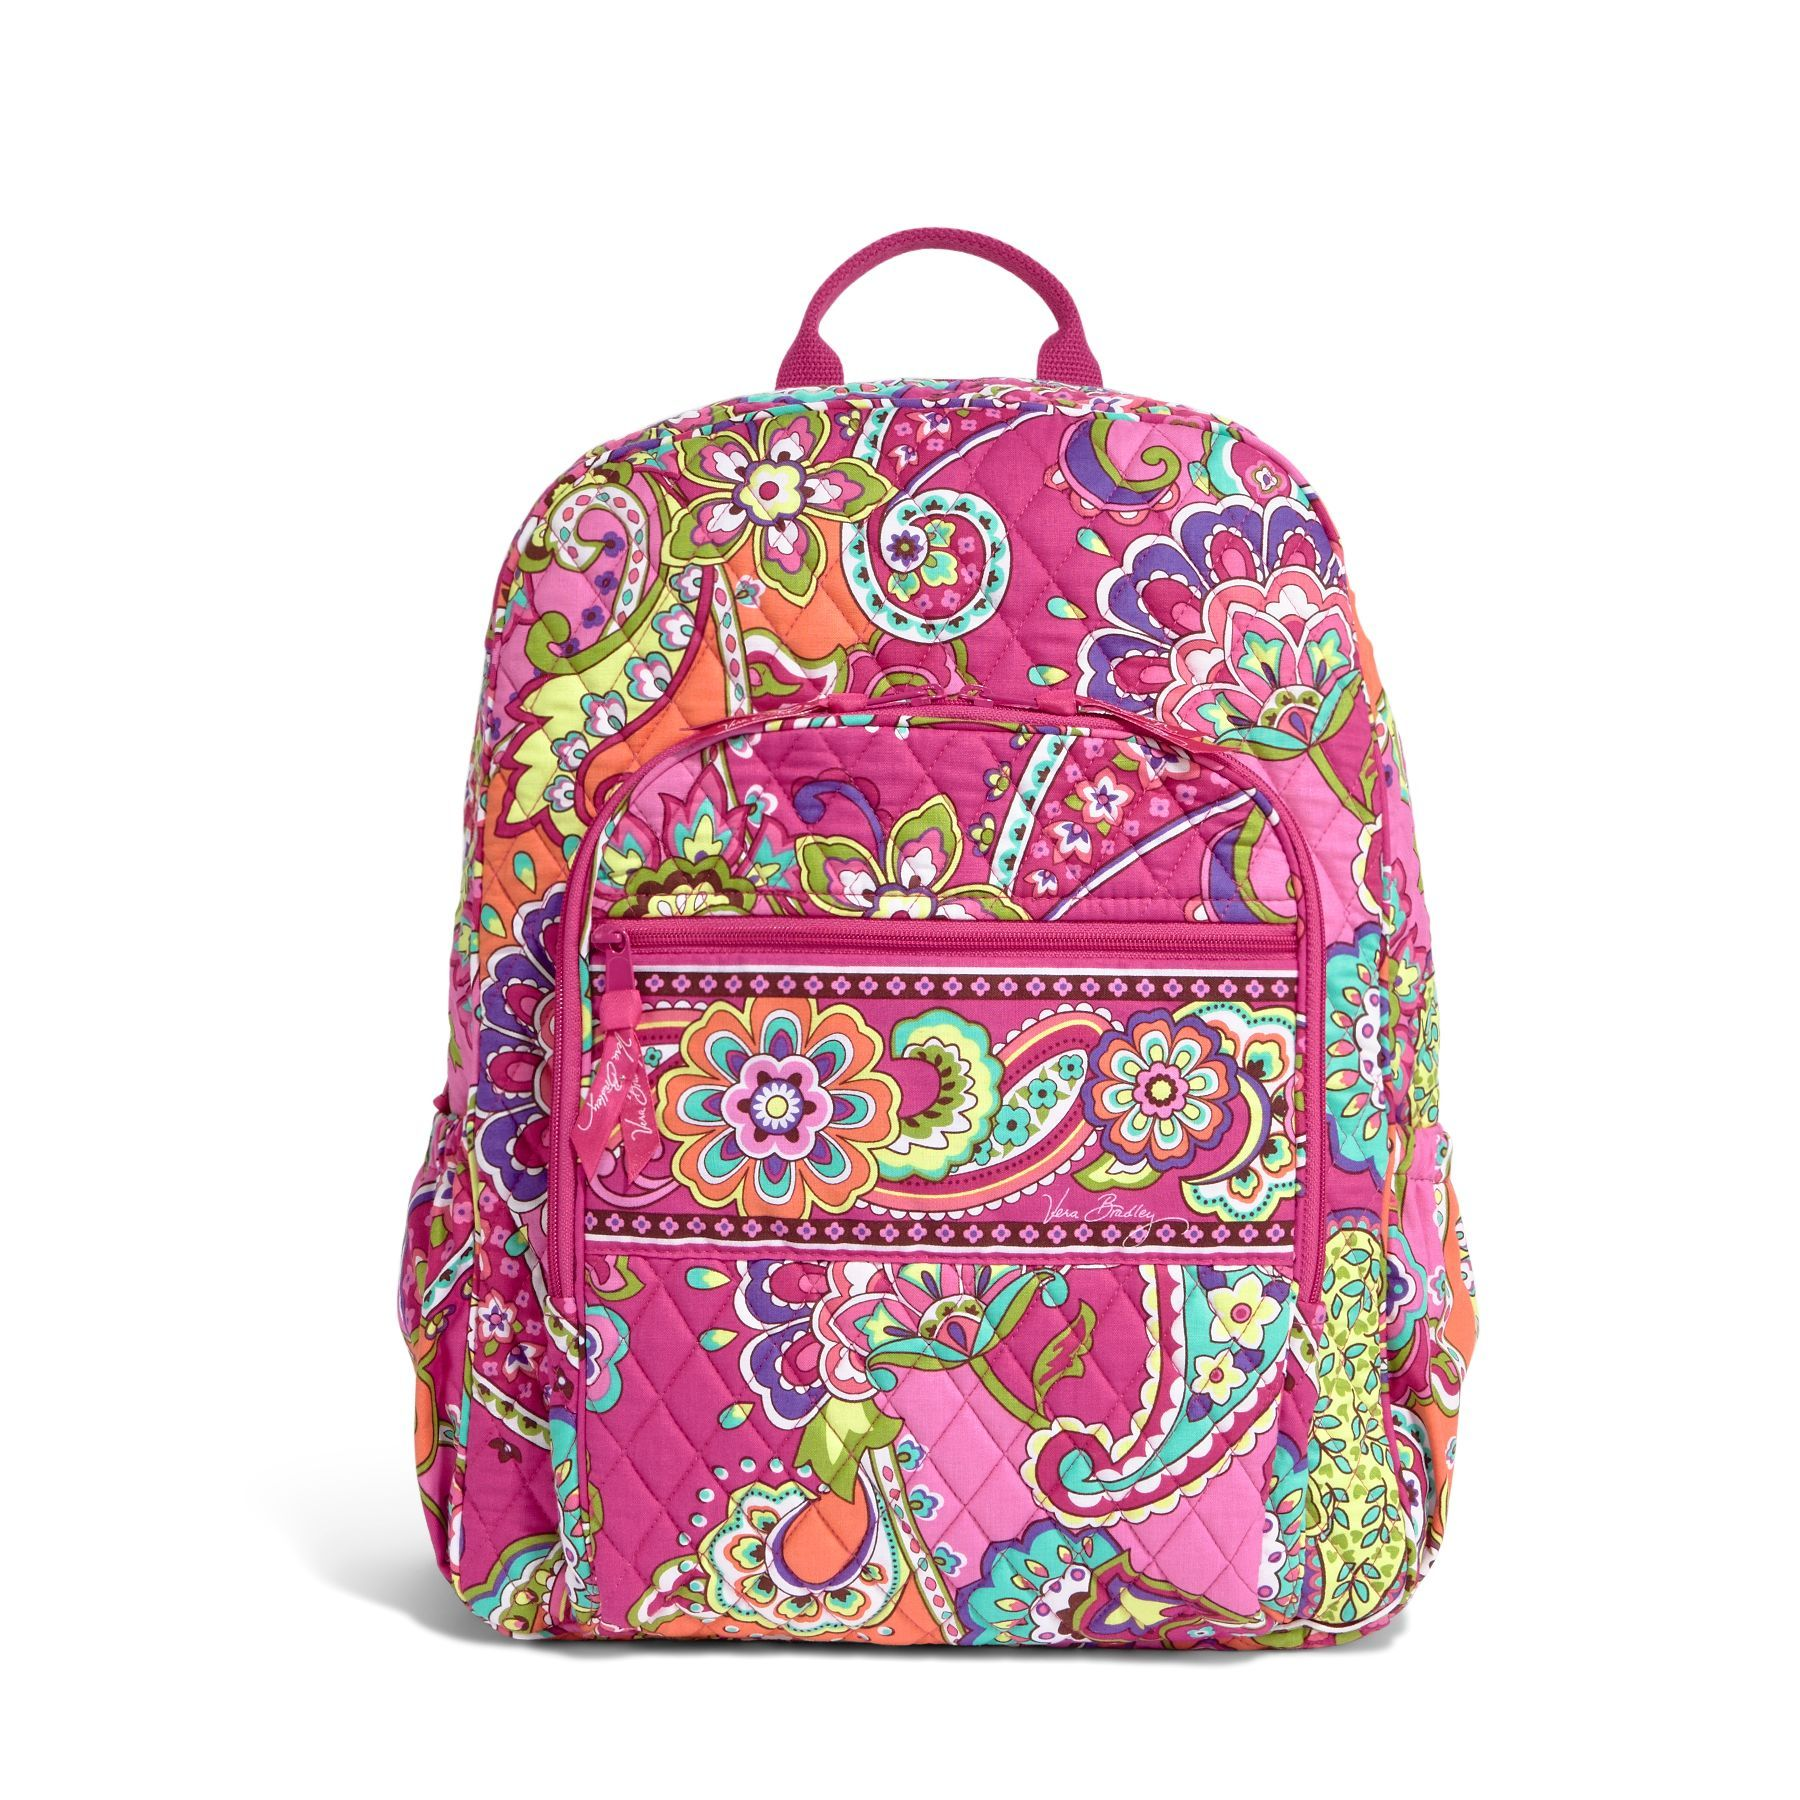 Bags for school on sale - Campus Backpack In Pink Swirls Vera Bradley My New Bag For Our Next Adventure And Then M Can Have It For School If I Don T Use It Much